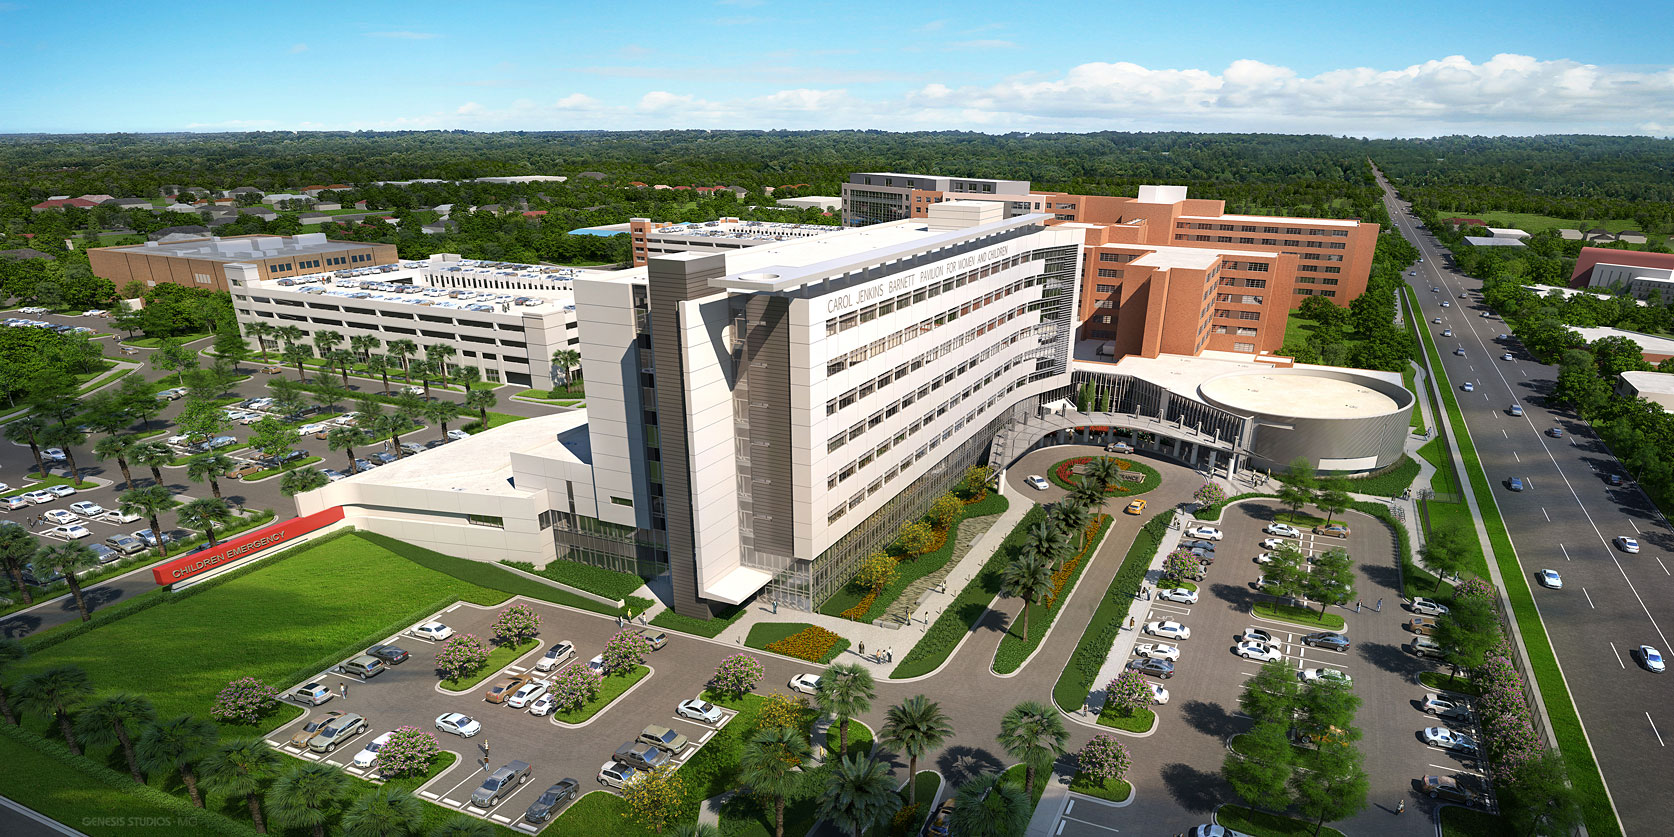 616070 Digital Photorealistic Architectural Renderings of Lakeland Regional Medical Center from an Aerial View for Hunton Brady Architects